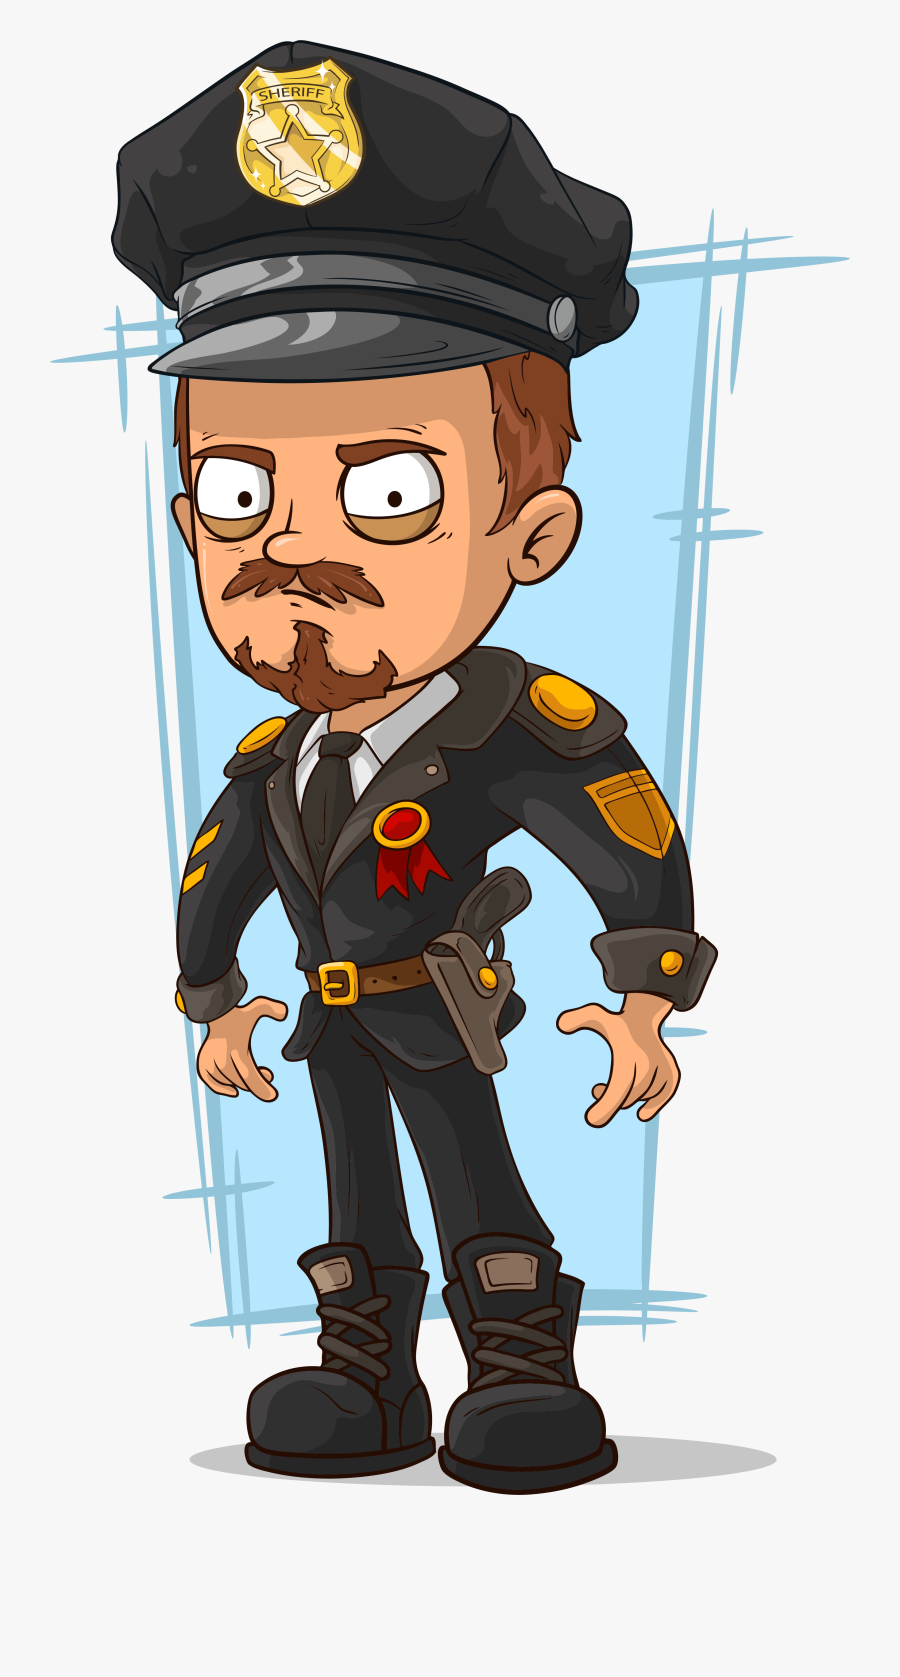 Cop Clipart Police Chief - Cop Cartoon Drawing, Transparent Clipart